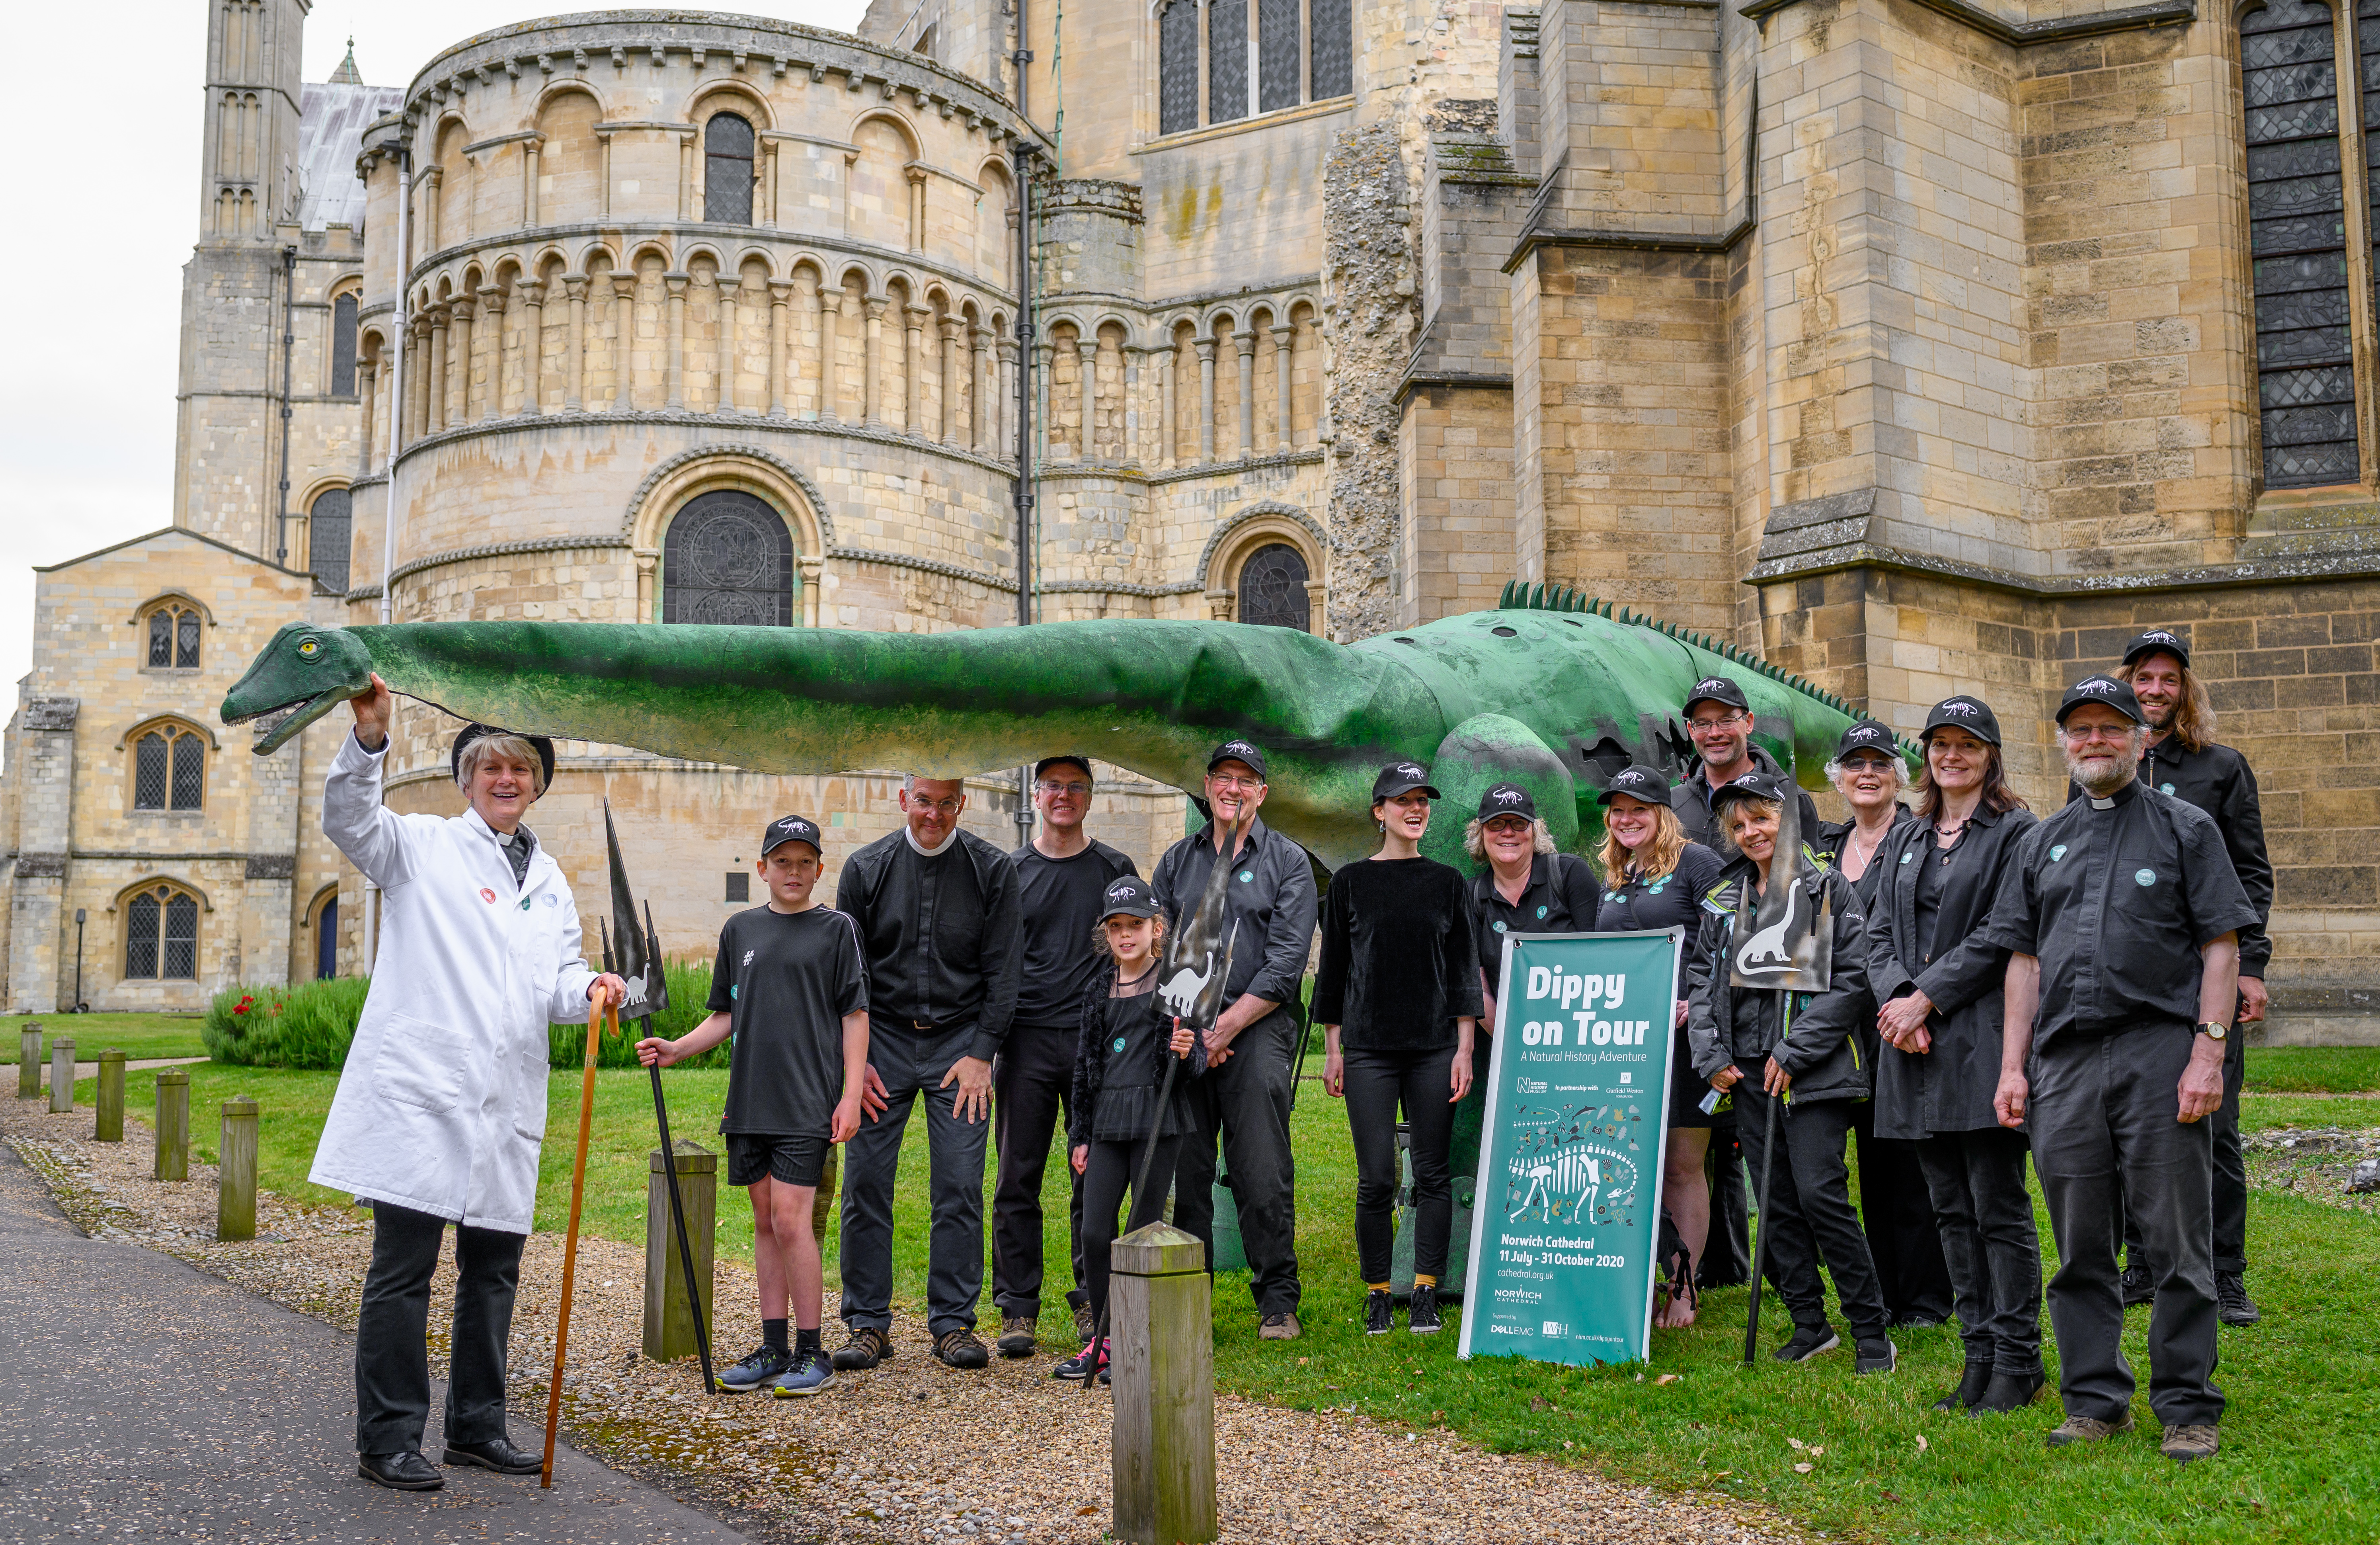 The Cathedral team with Ploddy the dinosaur puppet after the Lord Mayor's Procession (c) Bill Smith_Norwich Cathedral